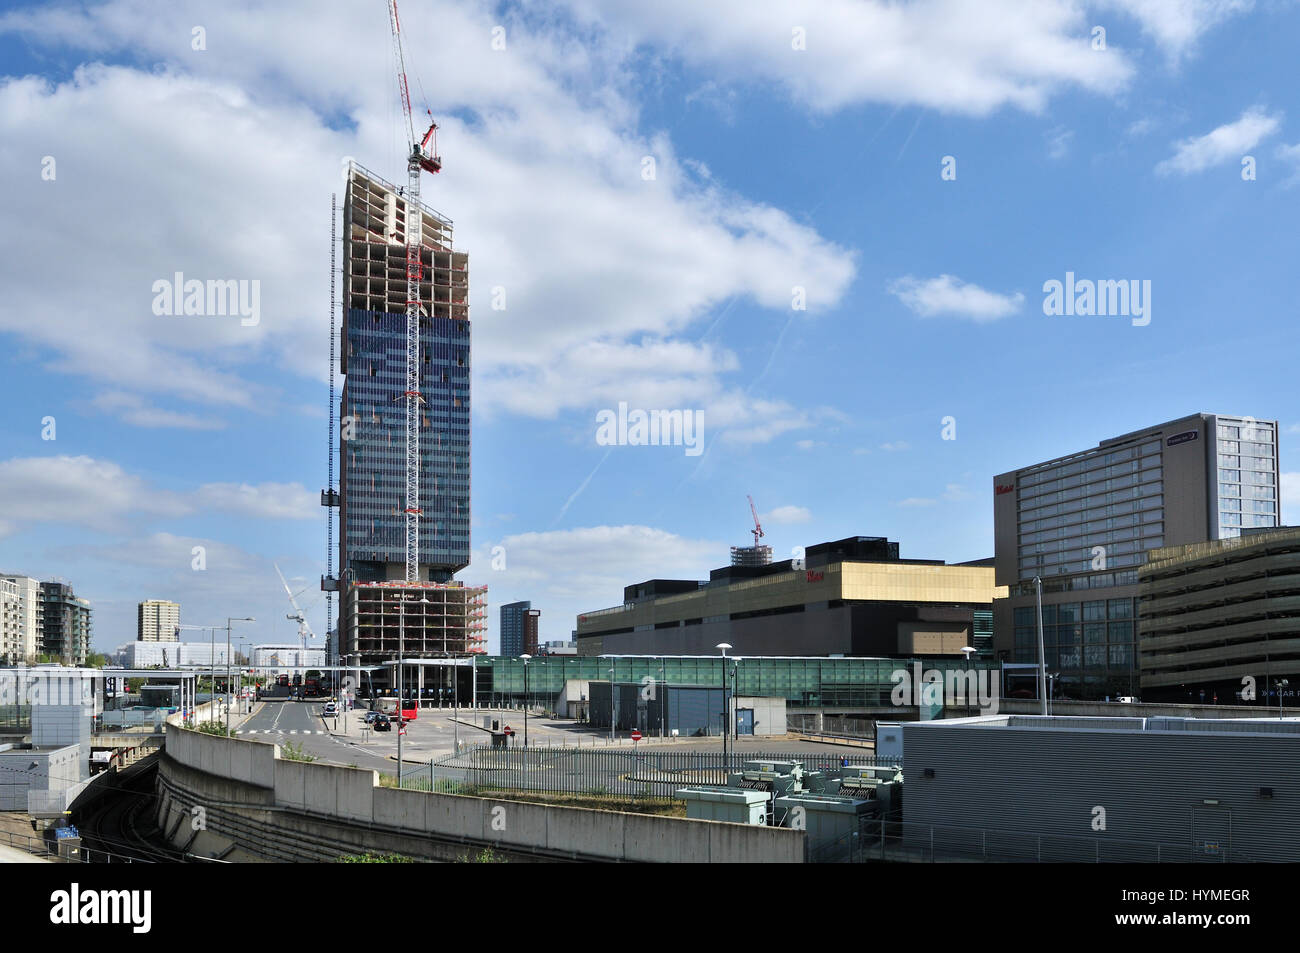 New tower block under constucion in Stratford, East London UK - Stock Image